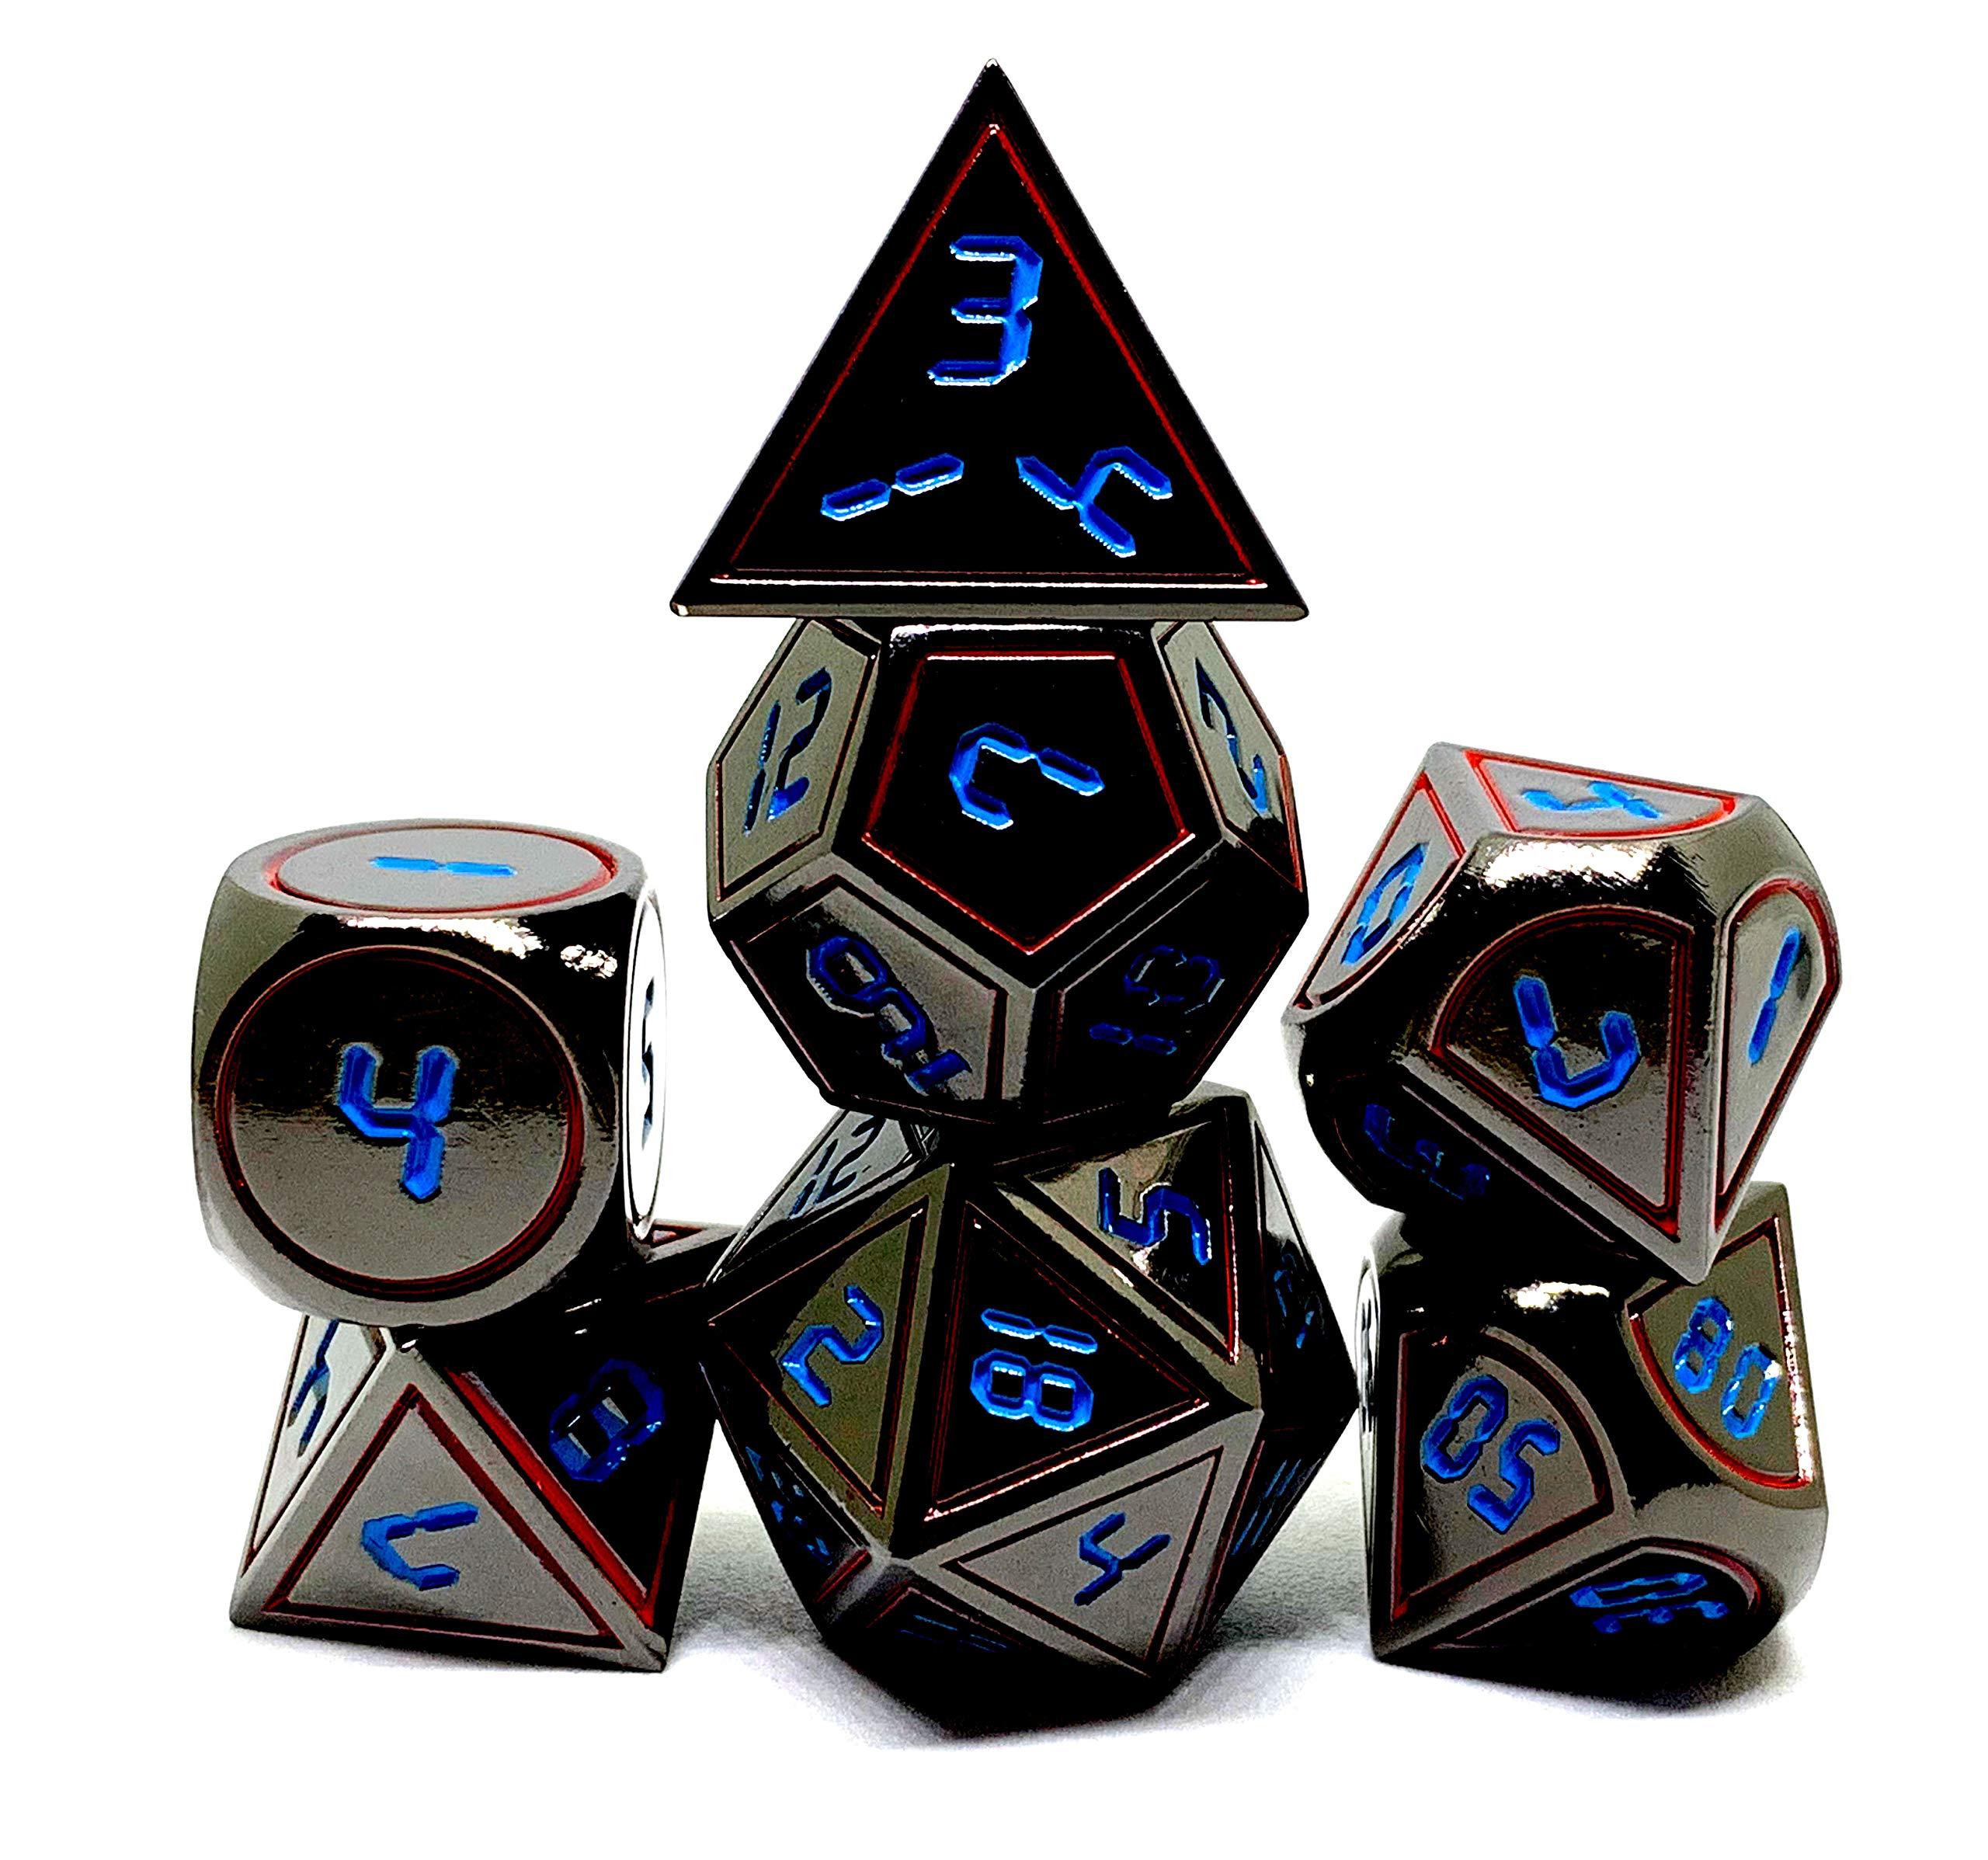 Dark Alpha Metal Polyhedral D&D Dice Set for RPGs by Darksilver Forge